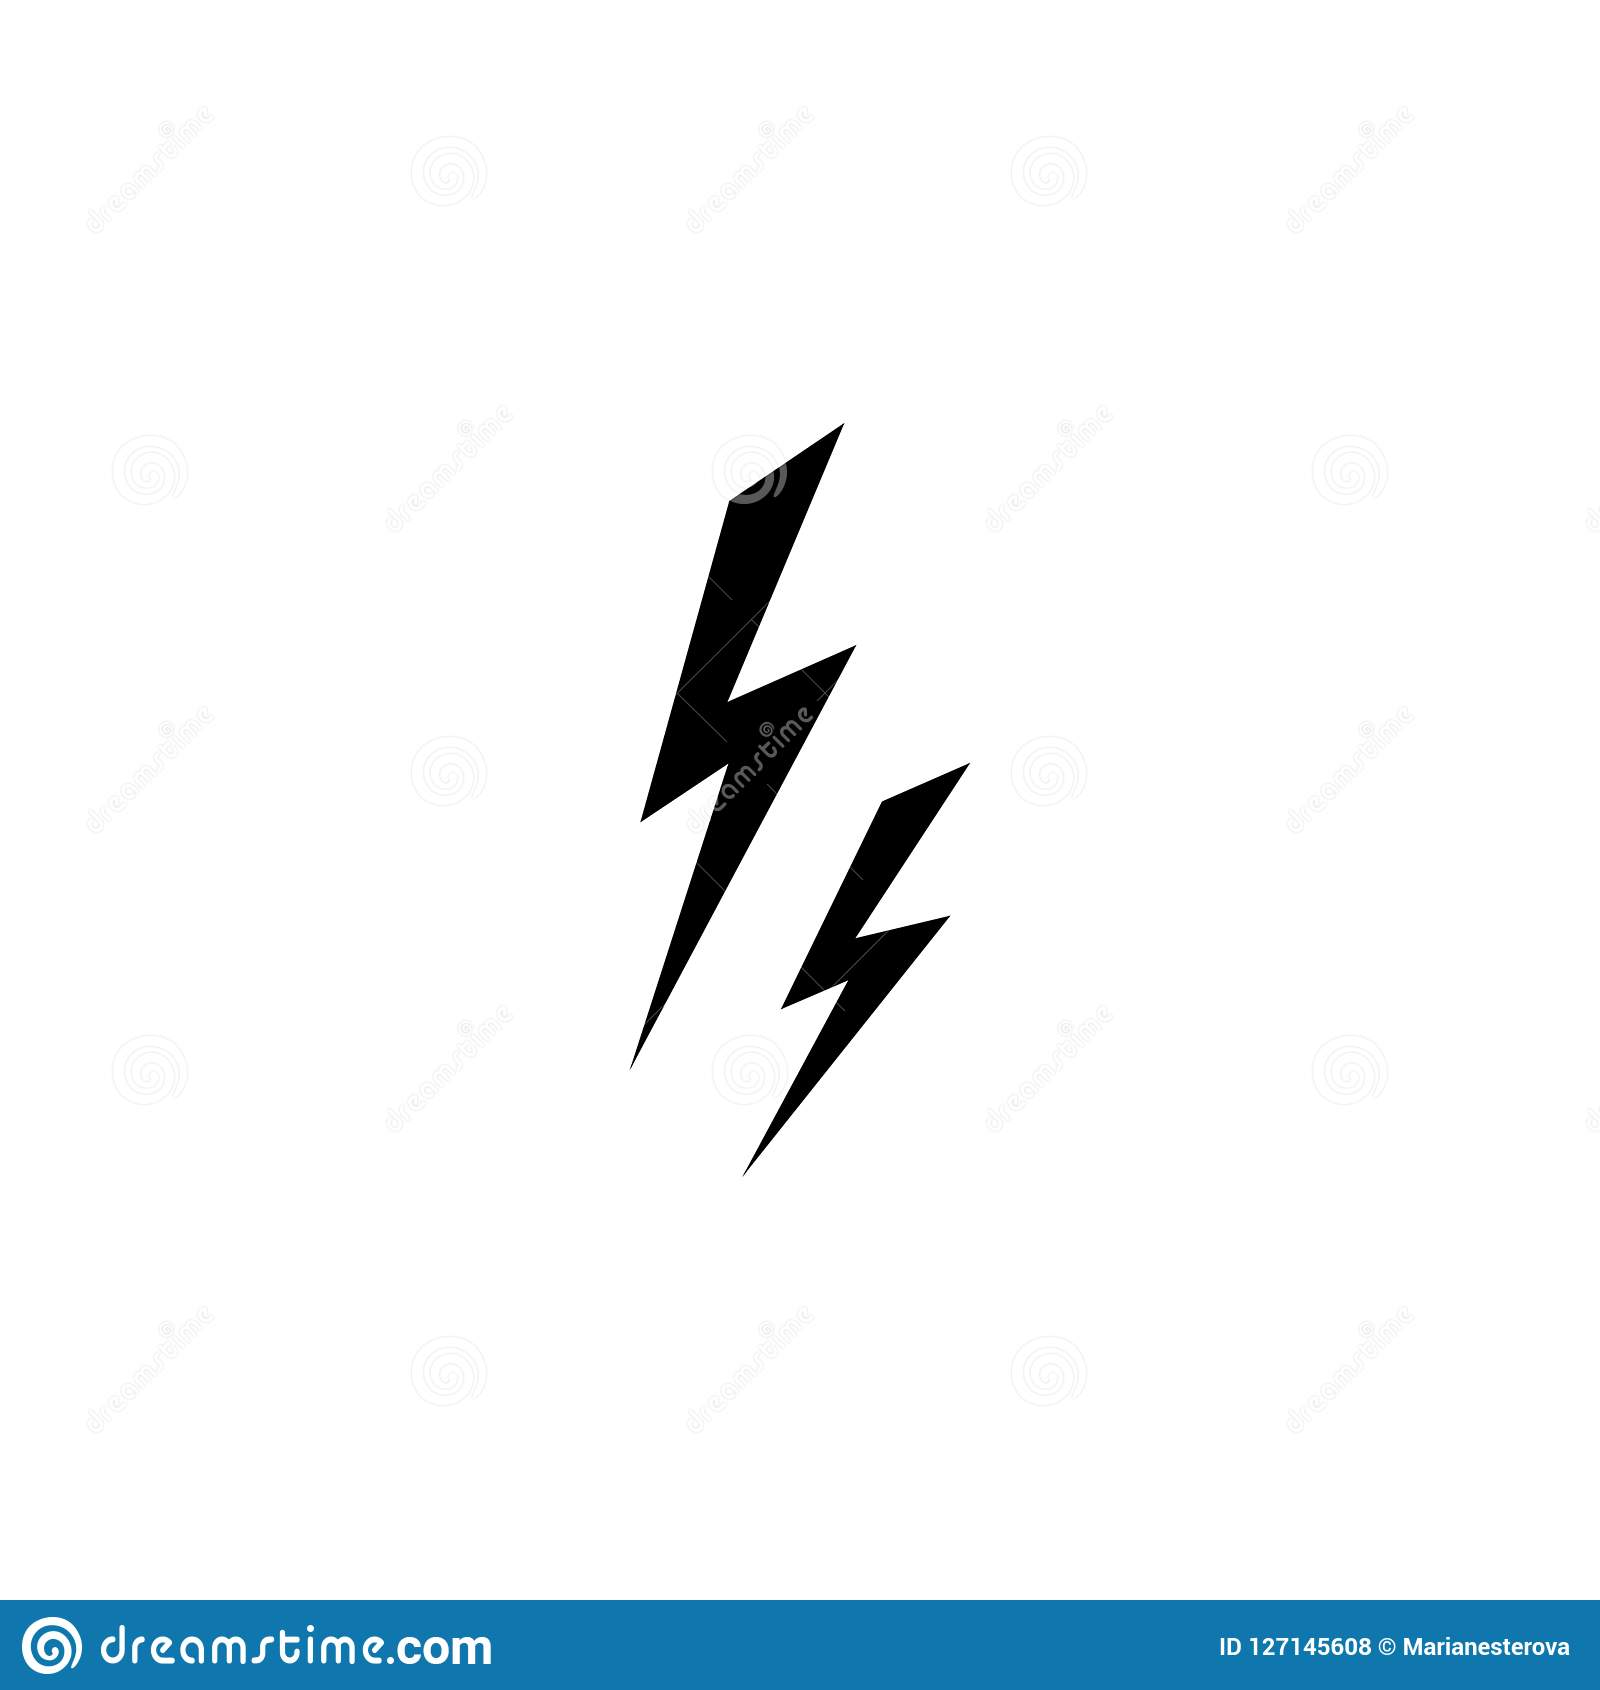 Black Lightning Bolt Simple Flat Icon  Storm Or Thunder And